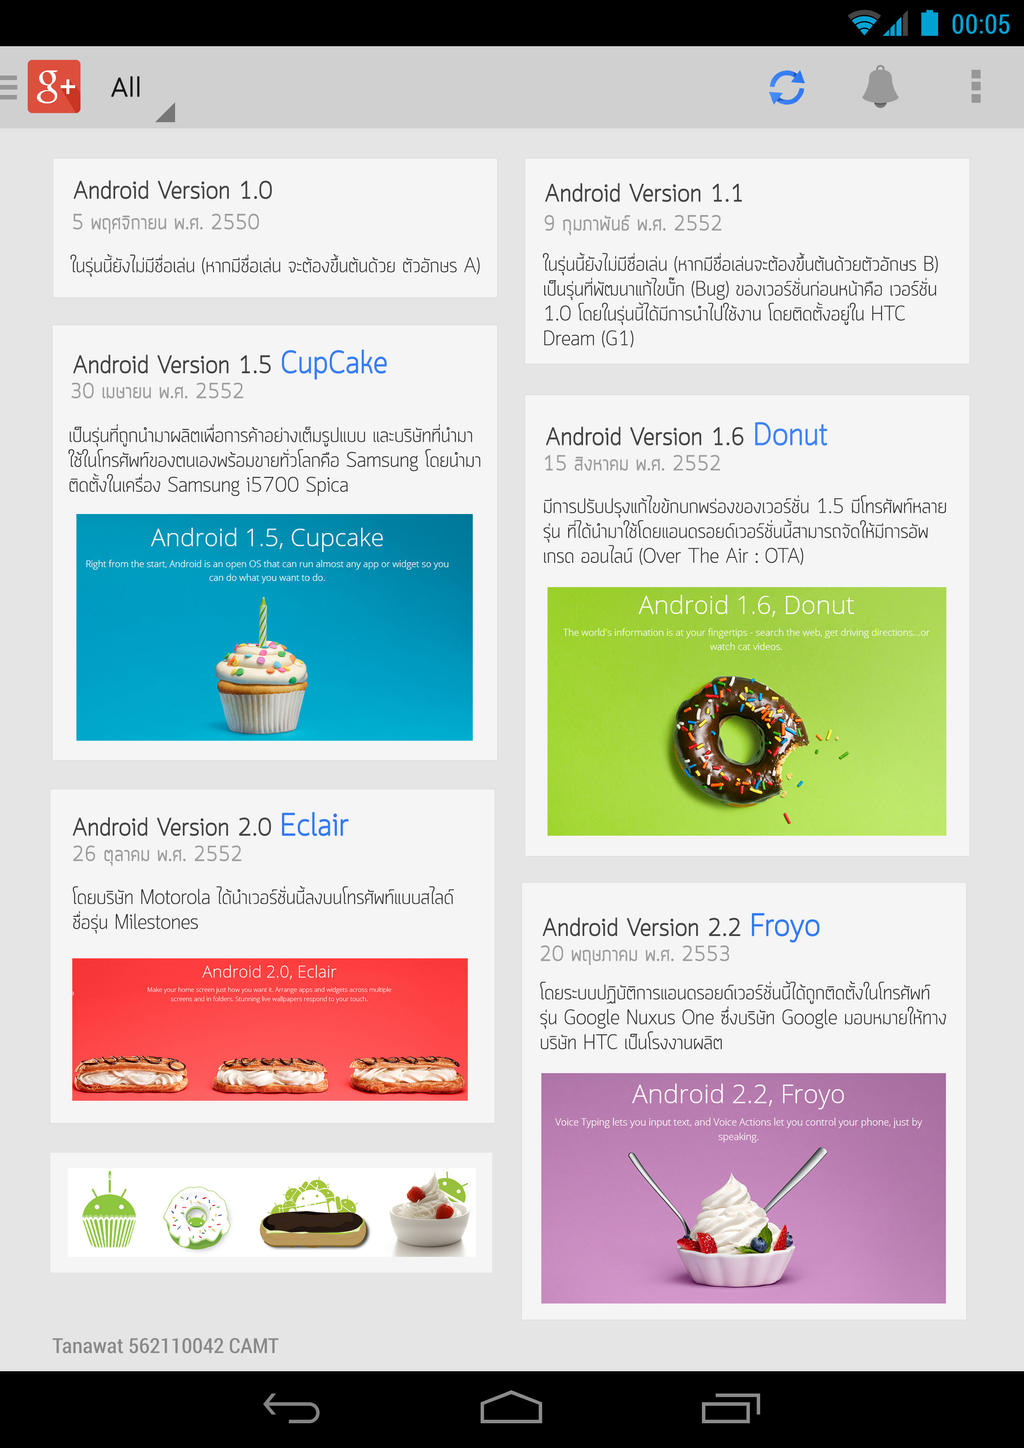 A Brief History of Android  E-Magazine Page 05 by kopskyz